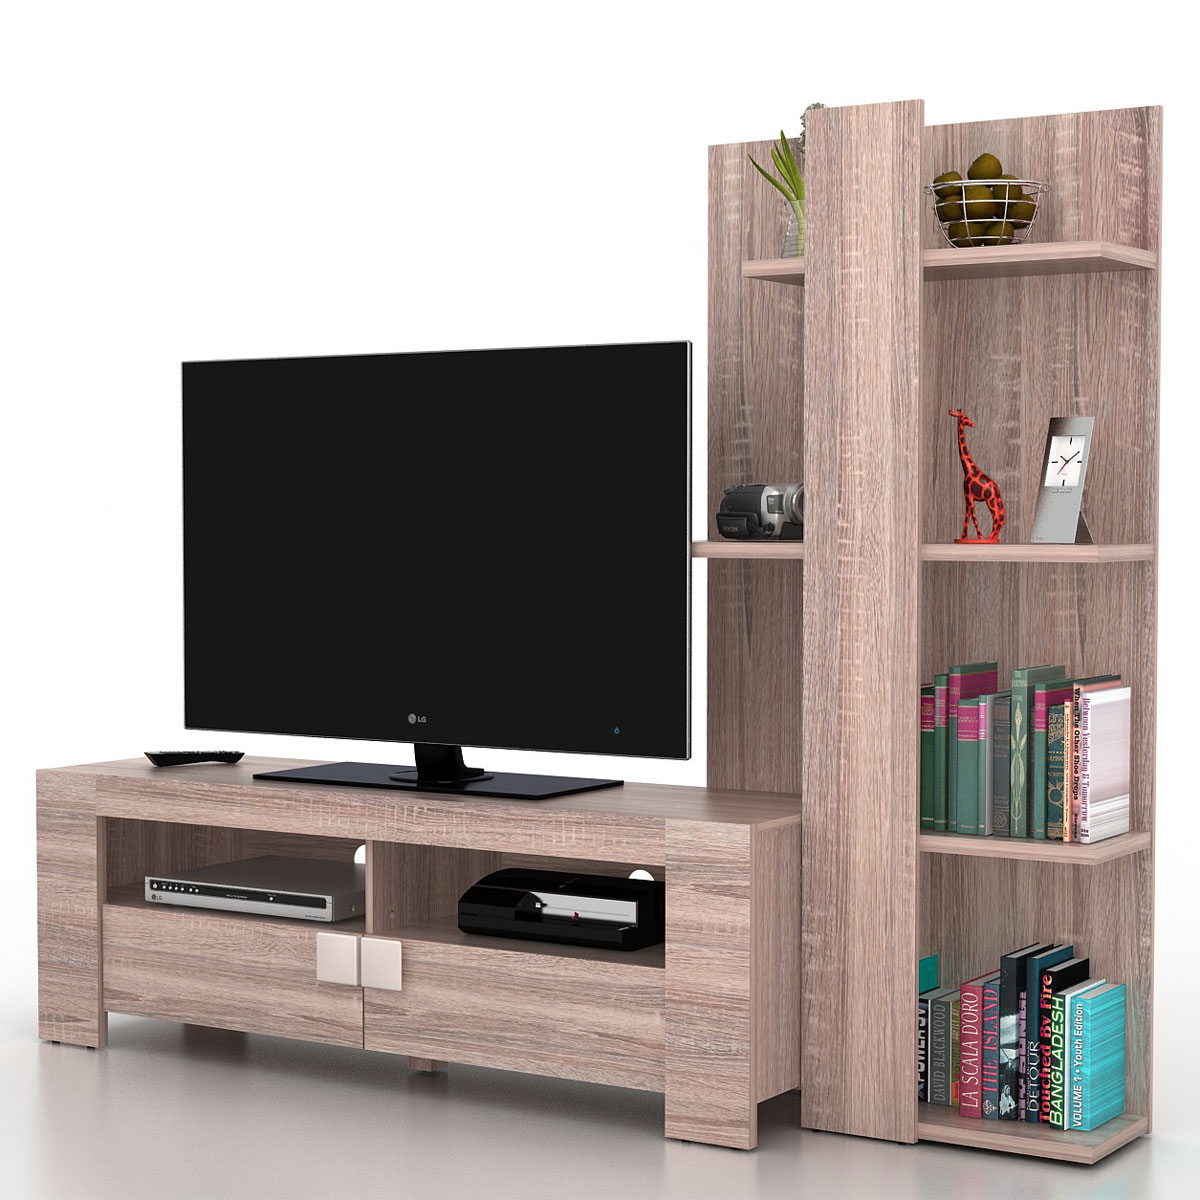 wohnwand lisburn wandregal raumteiler schrankwand 3d struktur eiche optik 199x160x42cm. Black Bedroom Furniture Sets. Home Design Ideas